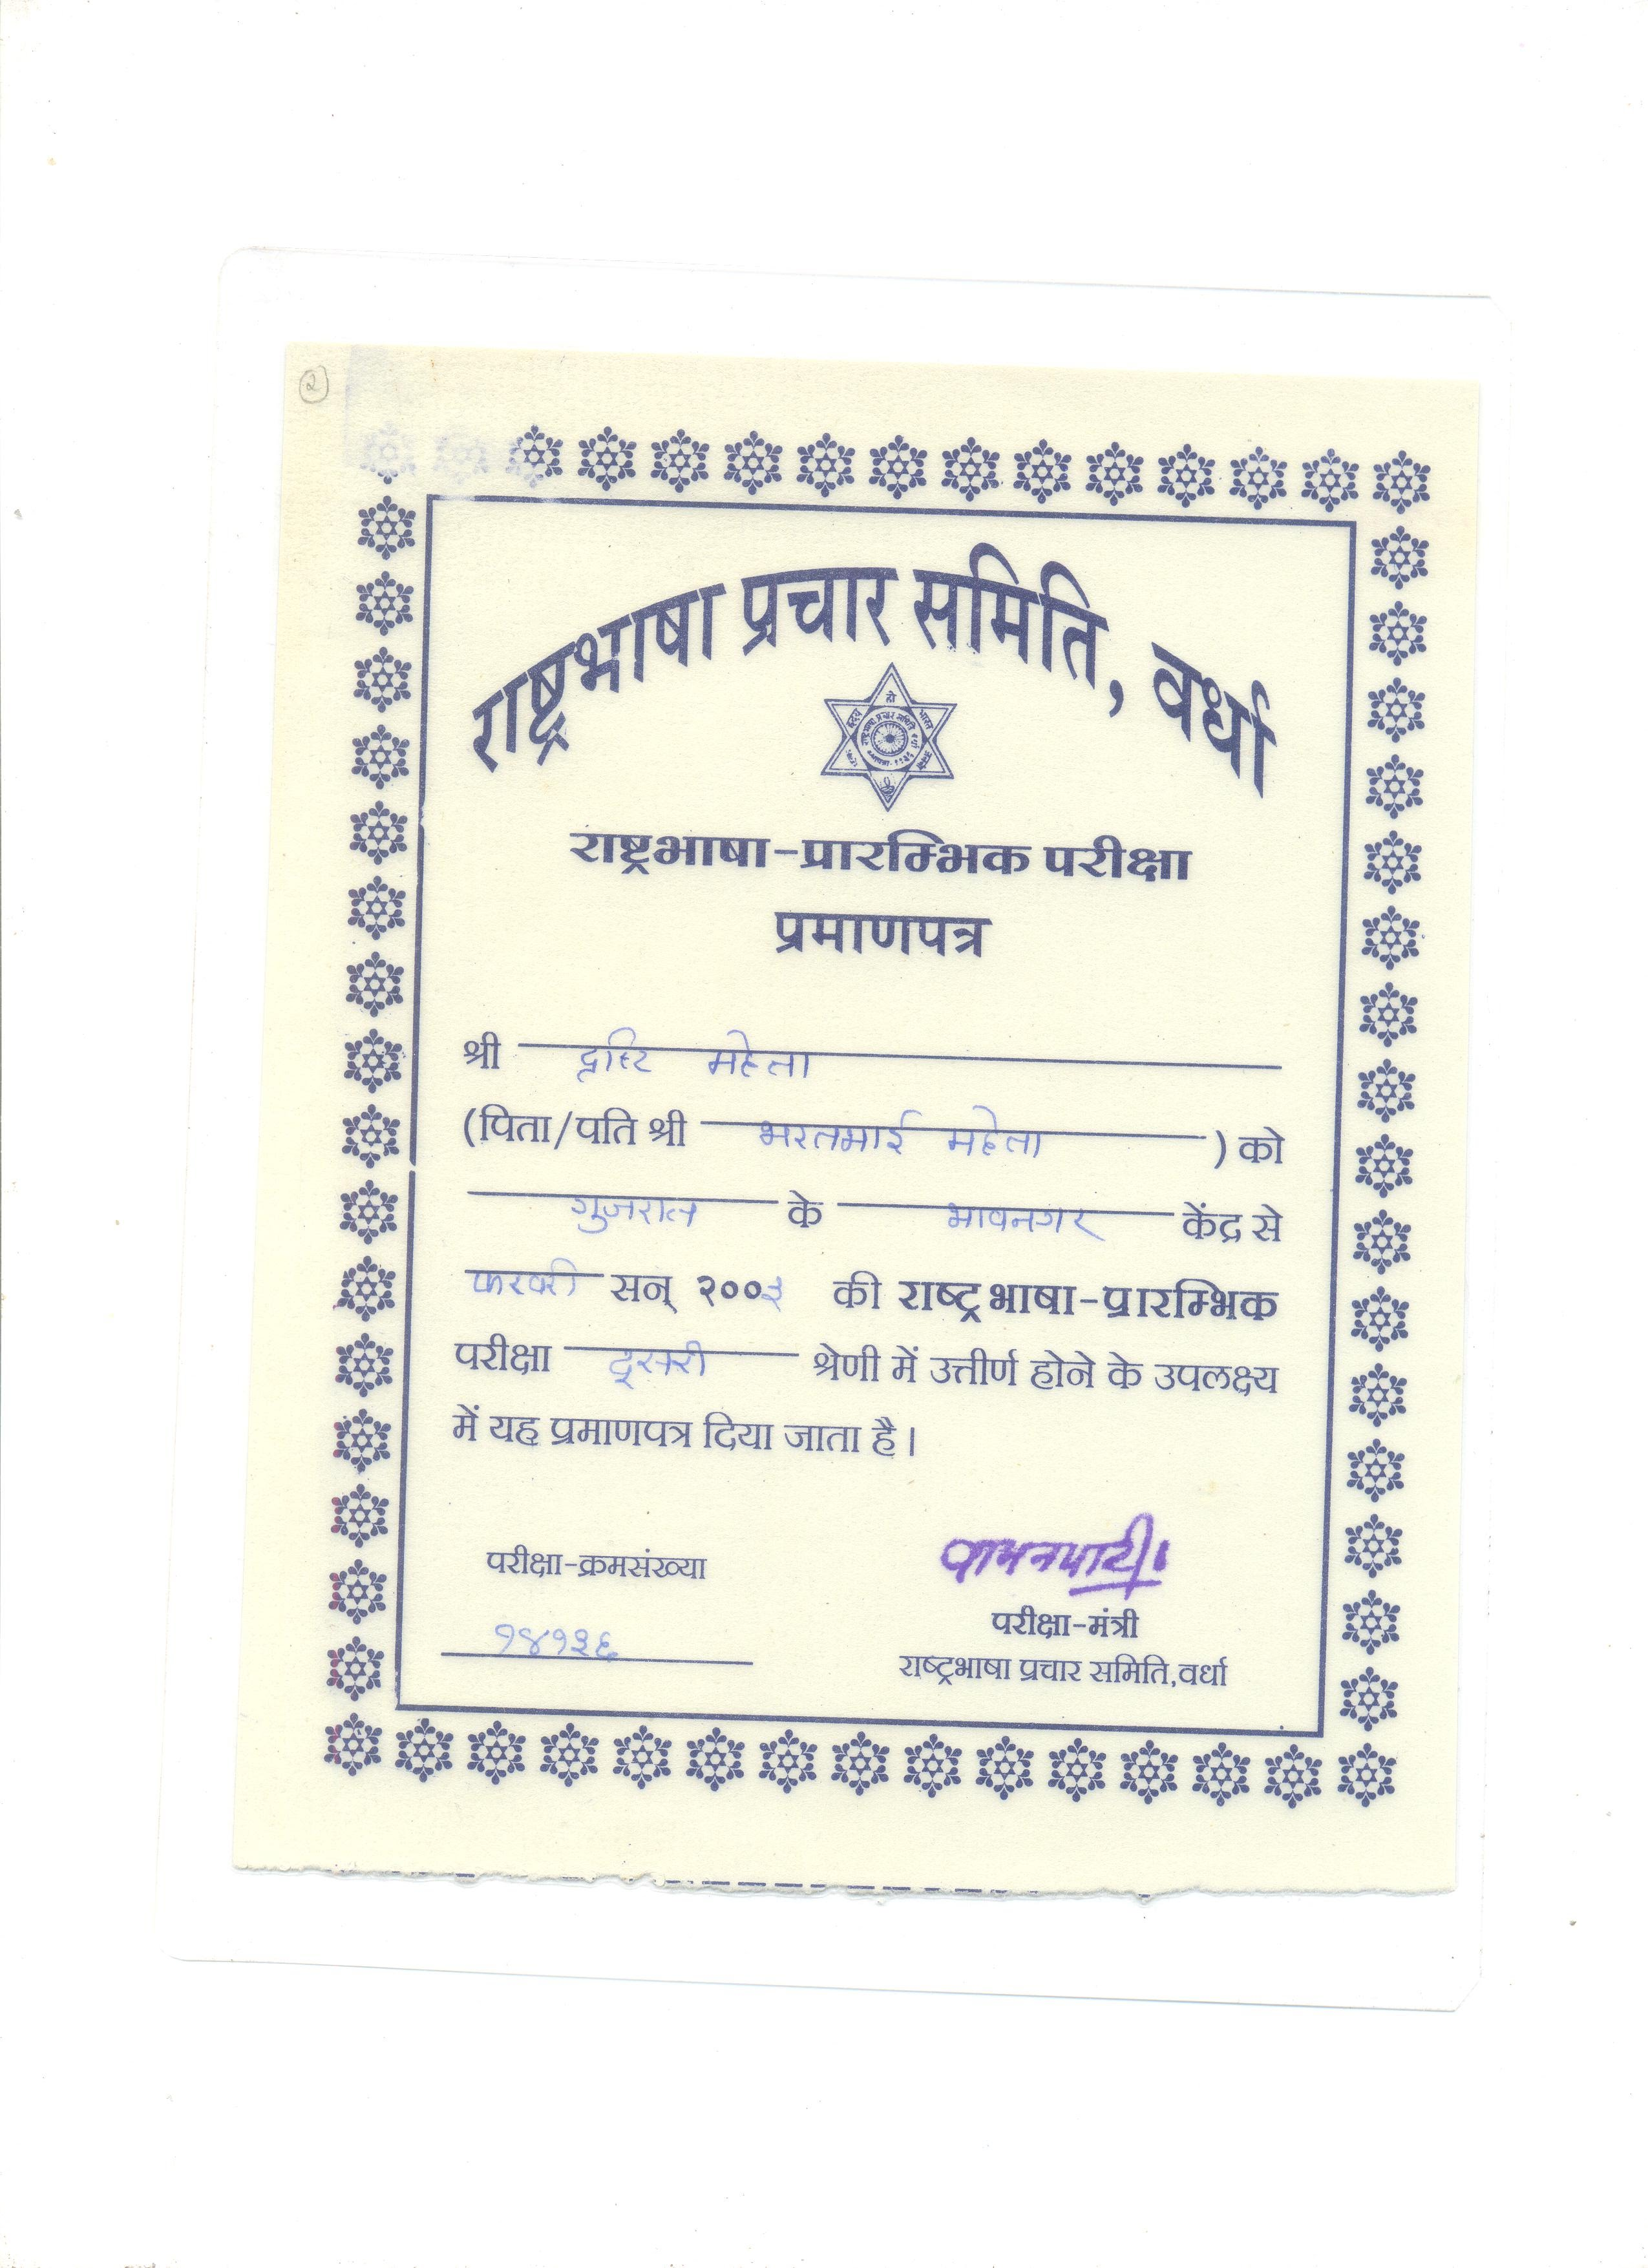 Mark sheet i get a certificate from college for doing active participation in nss annual camp sponsored by college altavistaventures Gallery